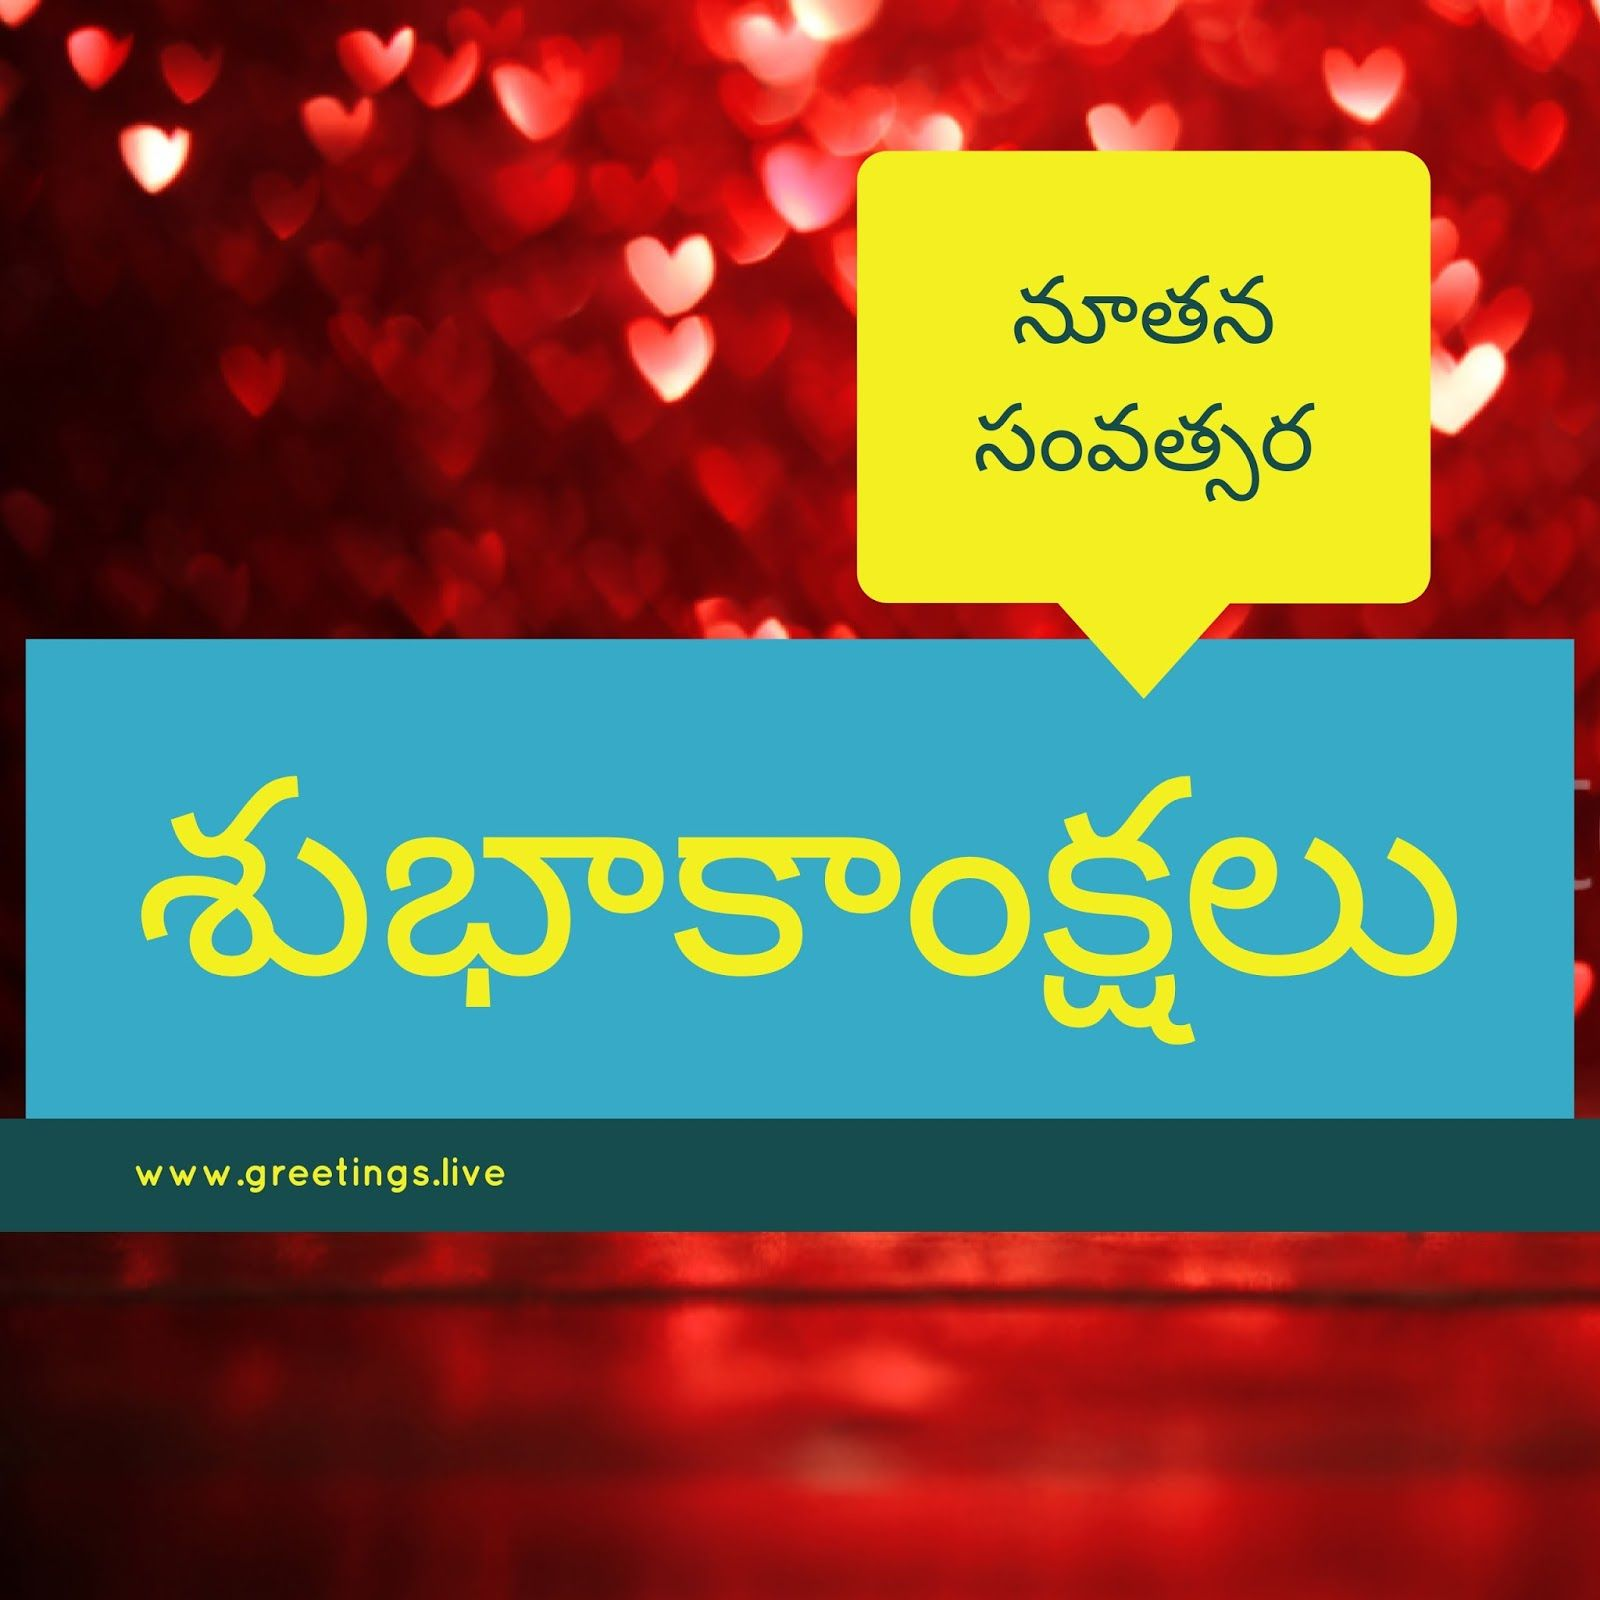 Two Telugu Greetings On New Year 2018 Greetings Live Pinterest